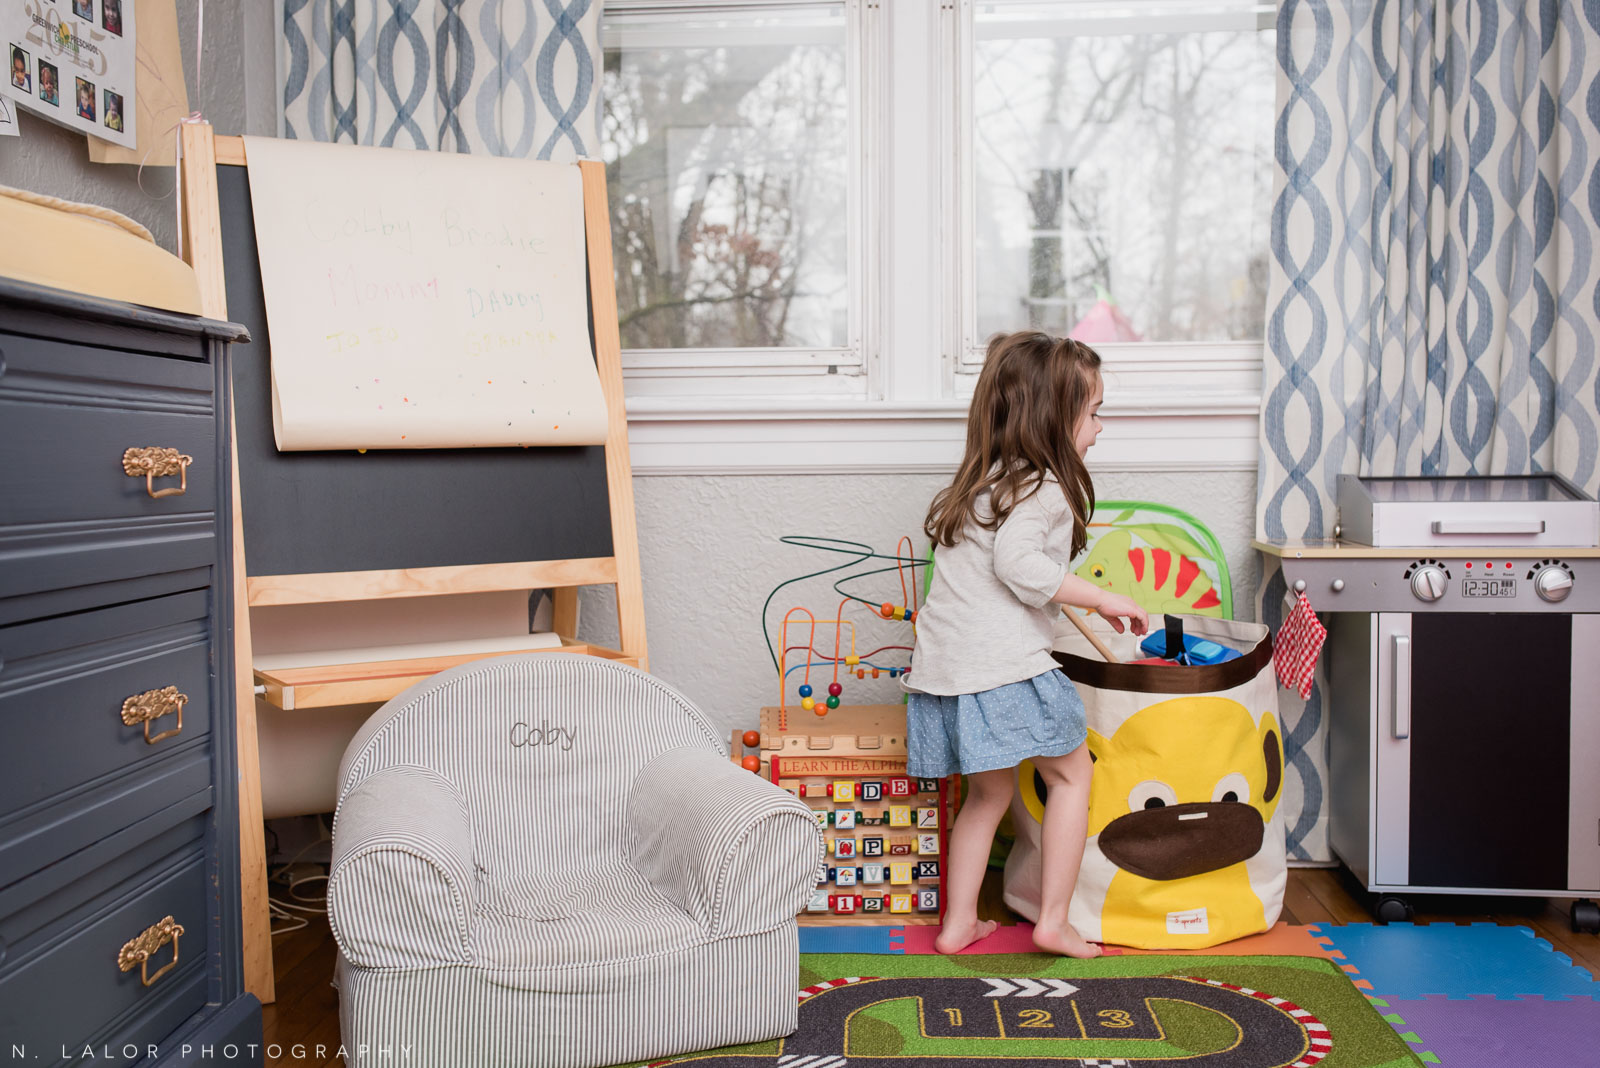 The play room. Interior shot by N. Lalor Photography. Greenwich, CT.